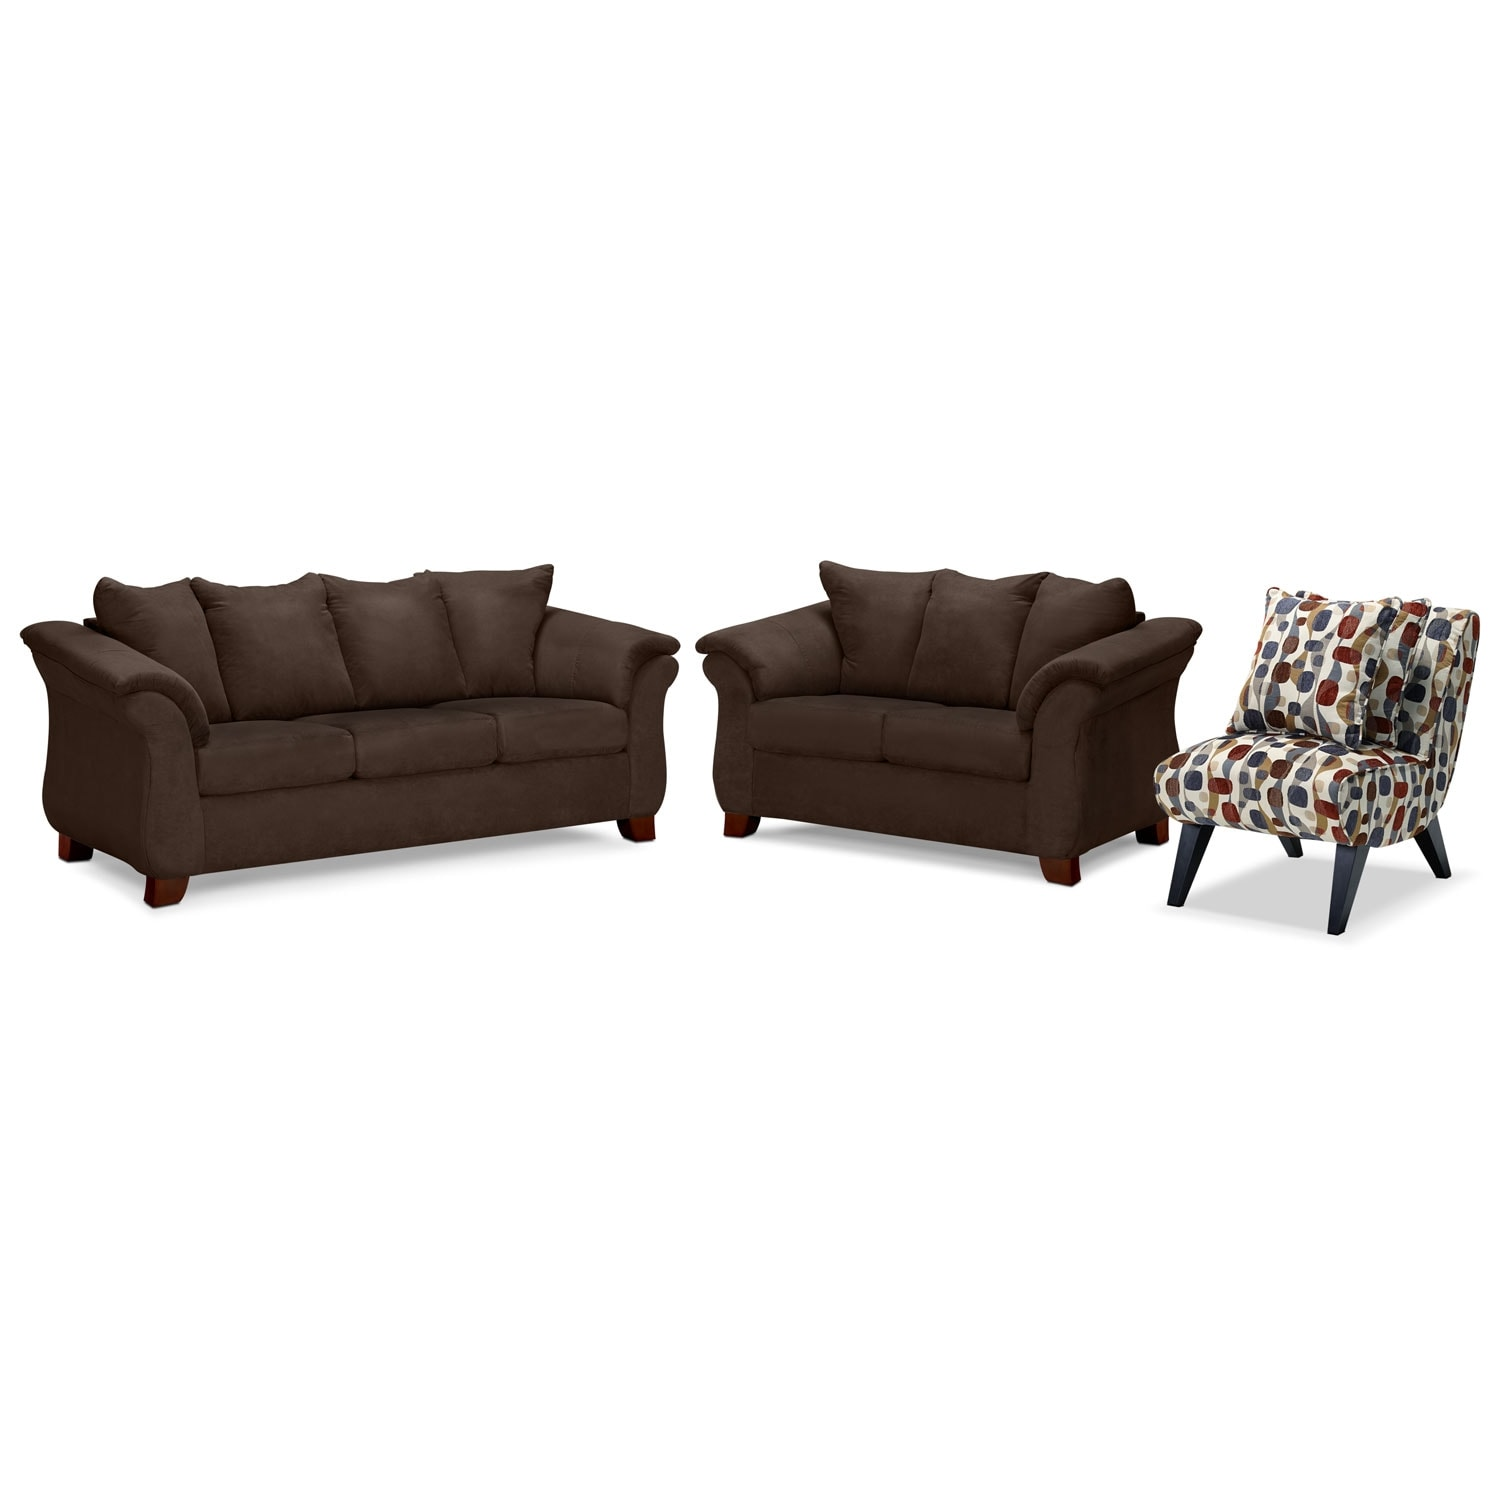 [Adrian Chocolate 3 Pc. Living Room w/ Accent Chair]